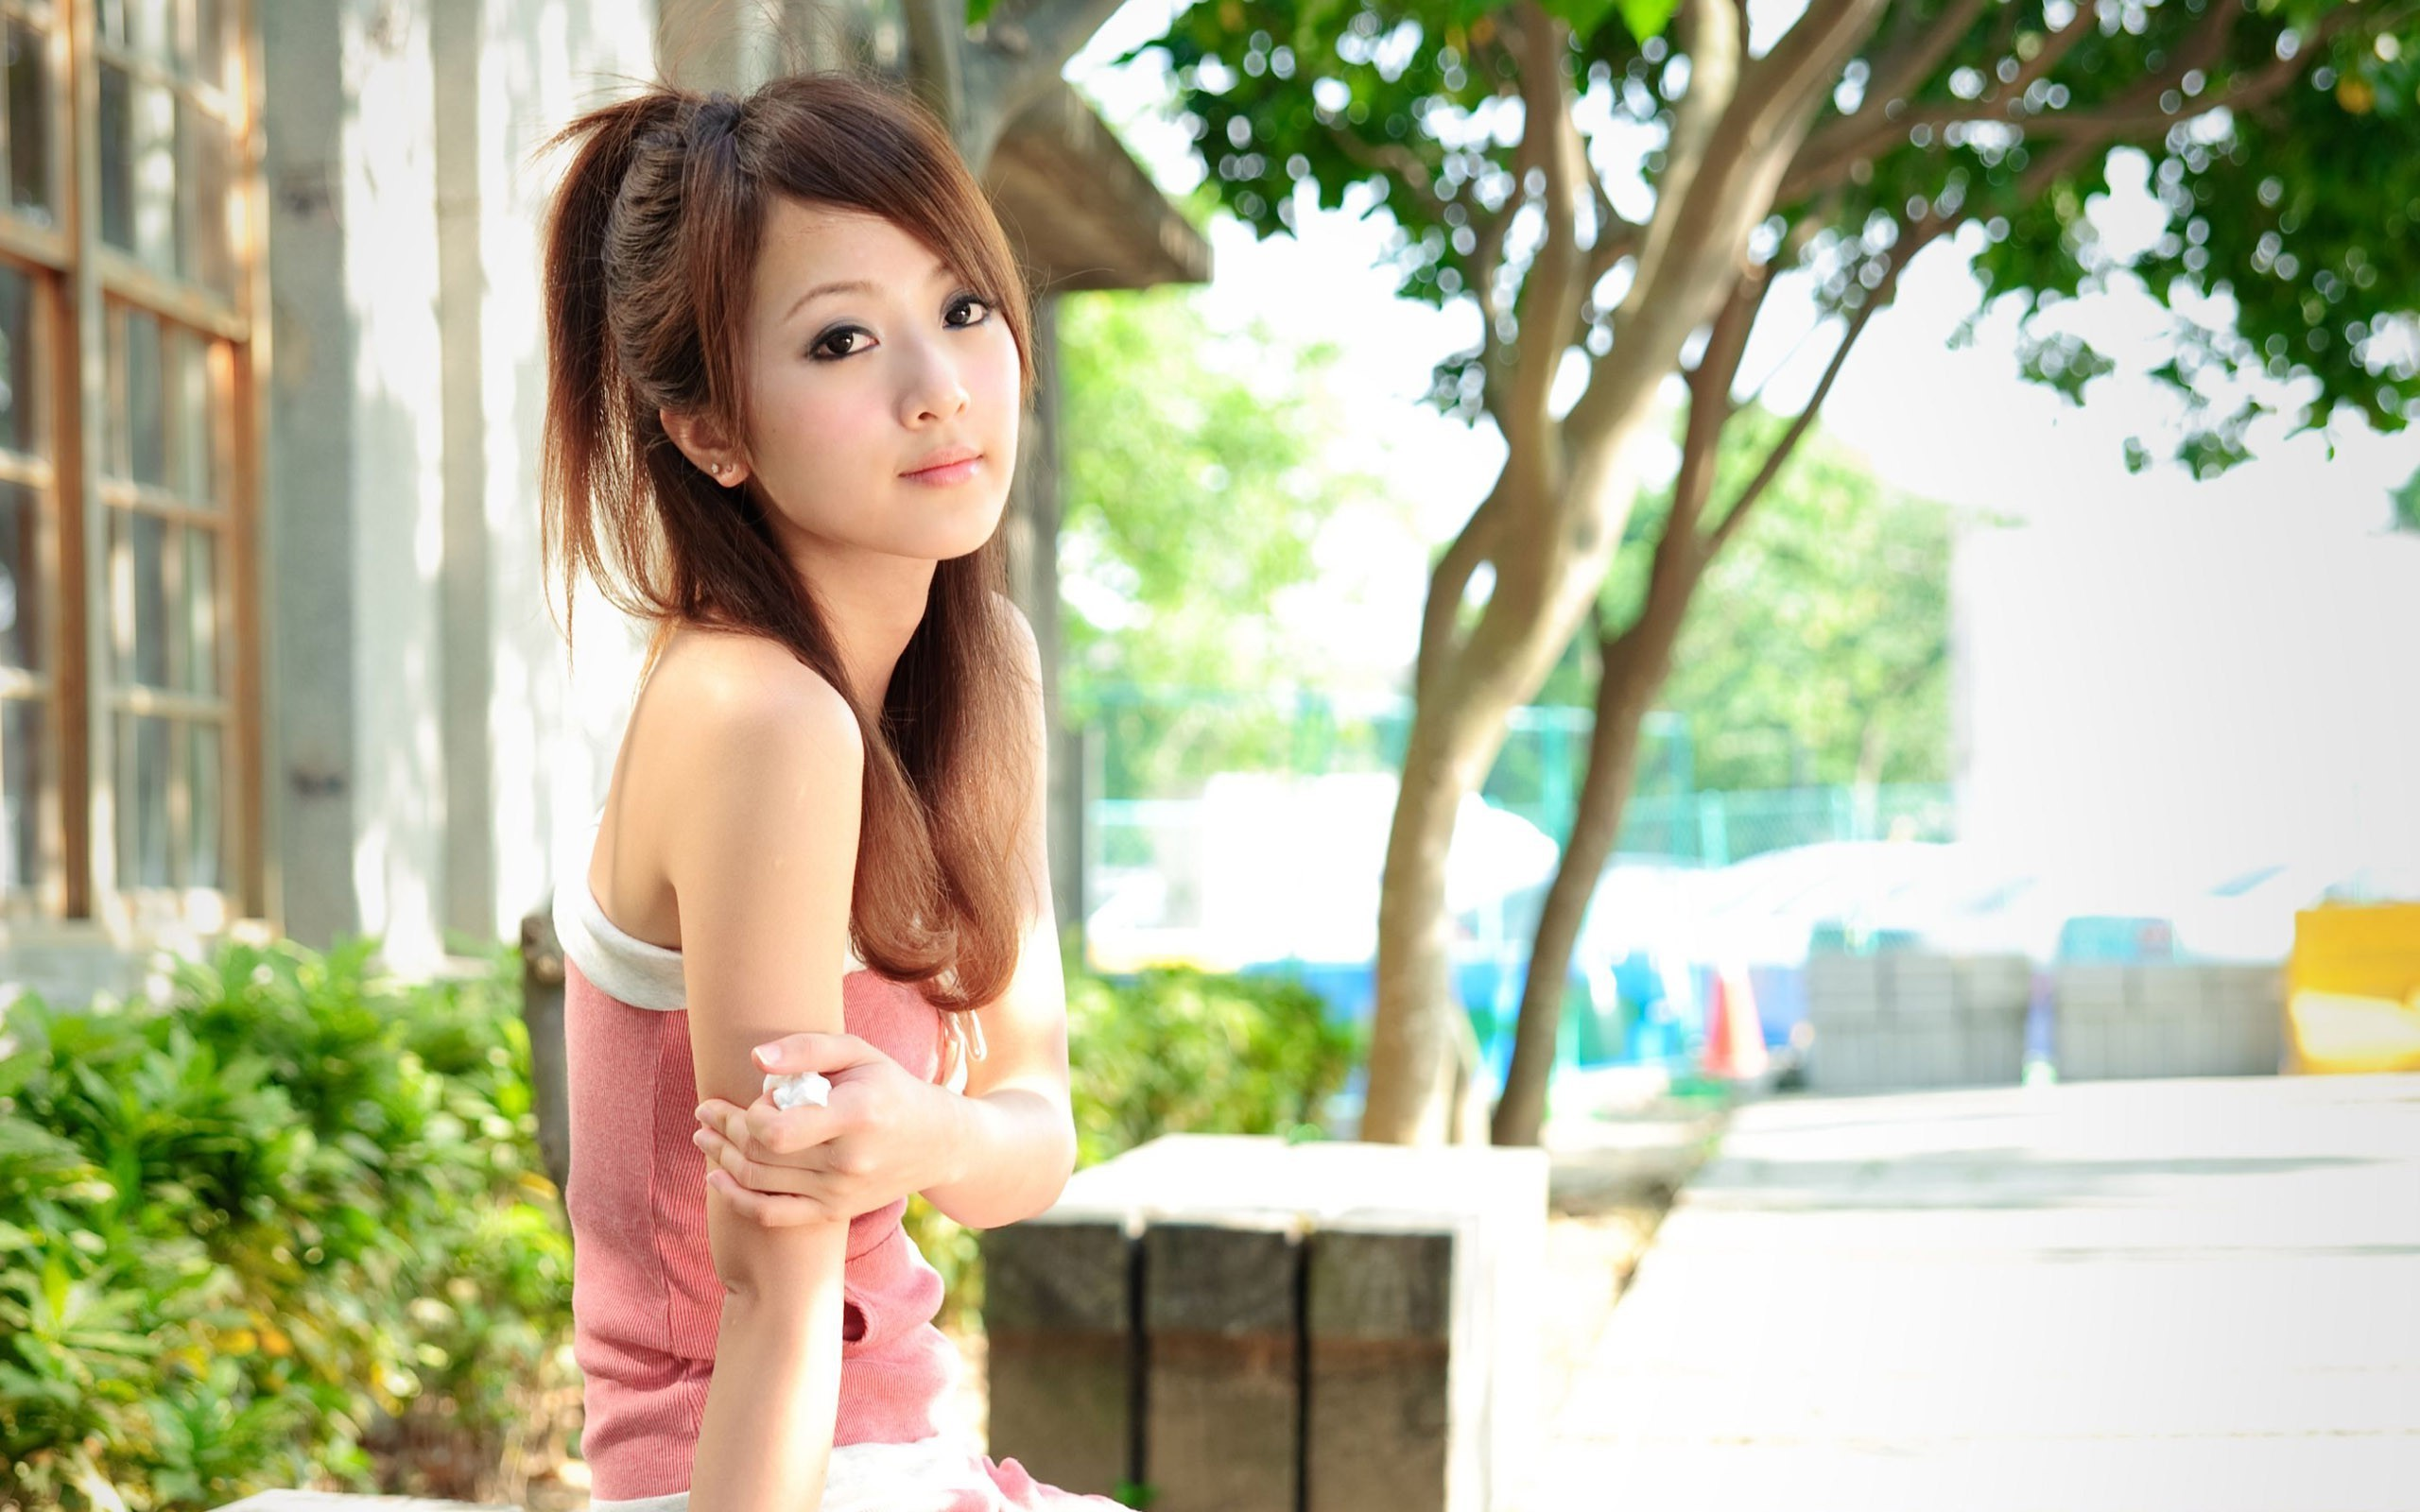 Asian Women Wallpapers HD Desktop and Mobile Backgrounds